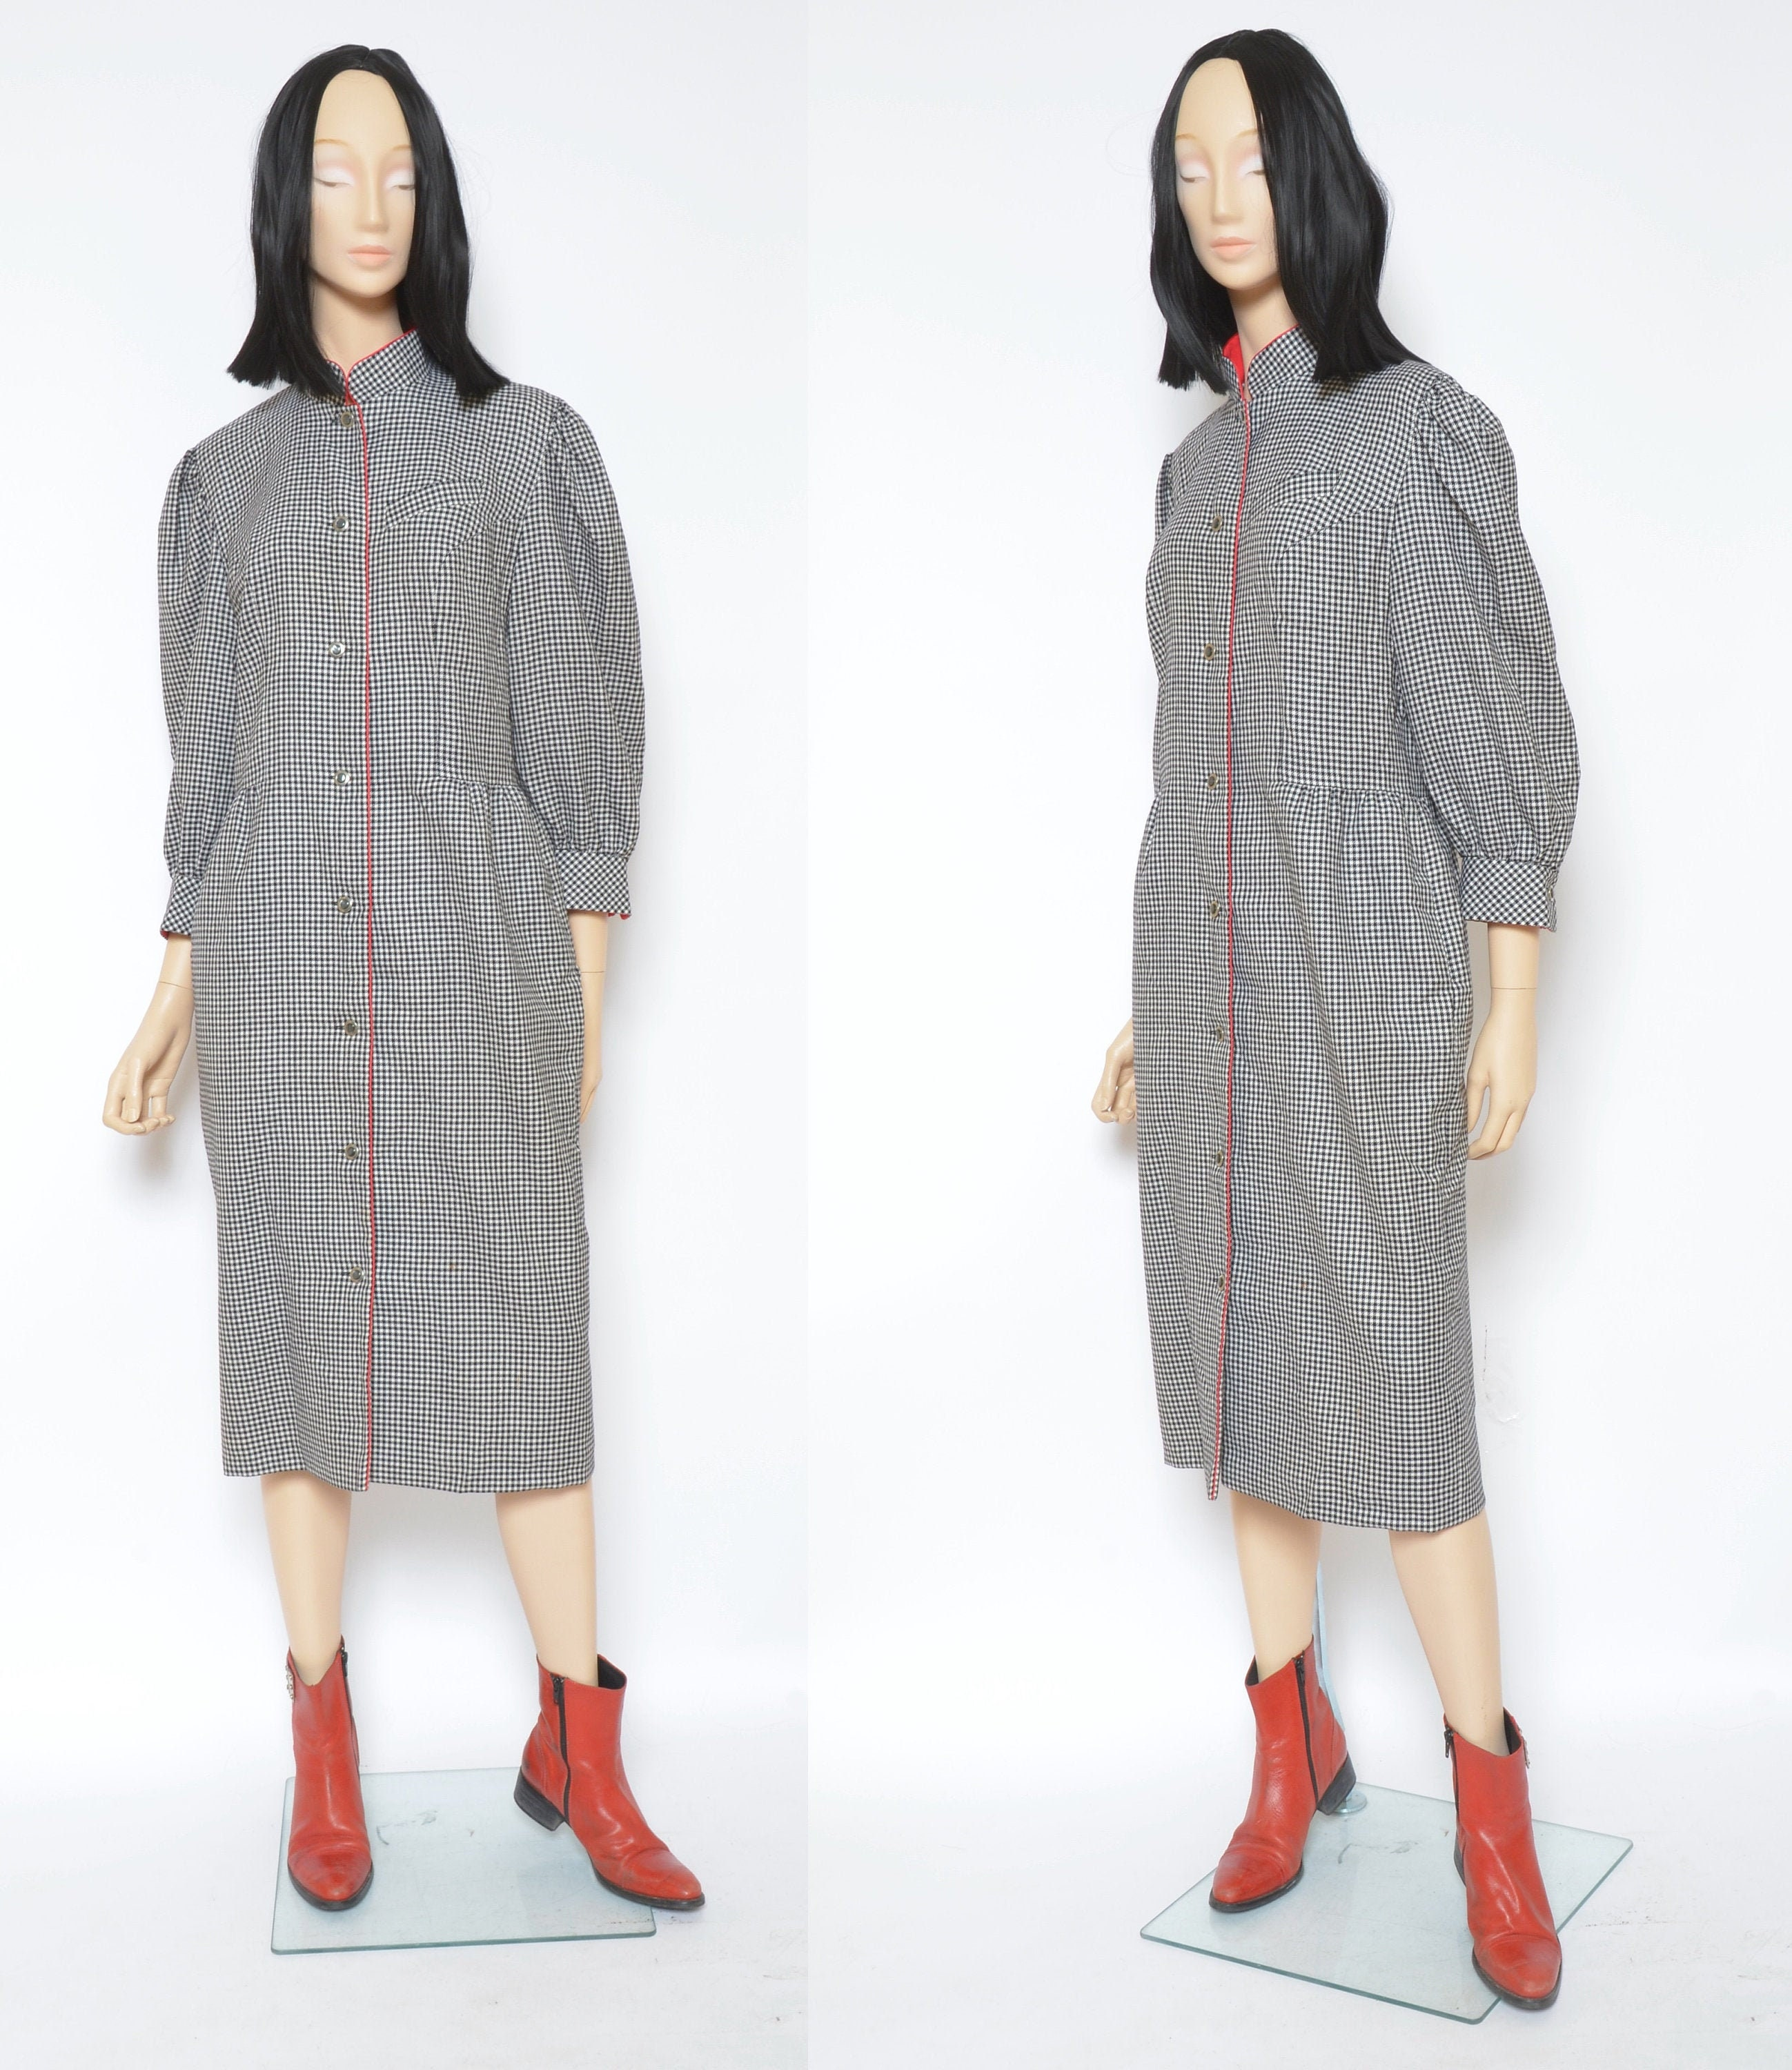 80s Dresses | Casual to Party Dresses Micro Houndstooth Wool DressVintage 80S Puff Big Sleeve Button Long - Size Large $8.00 AT vintagedancer.com